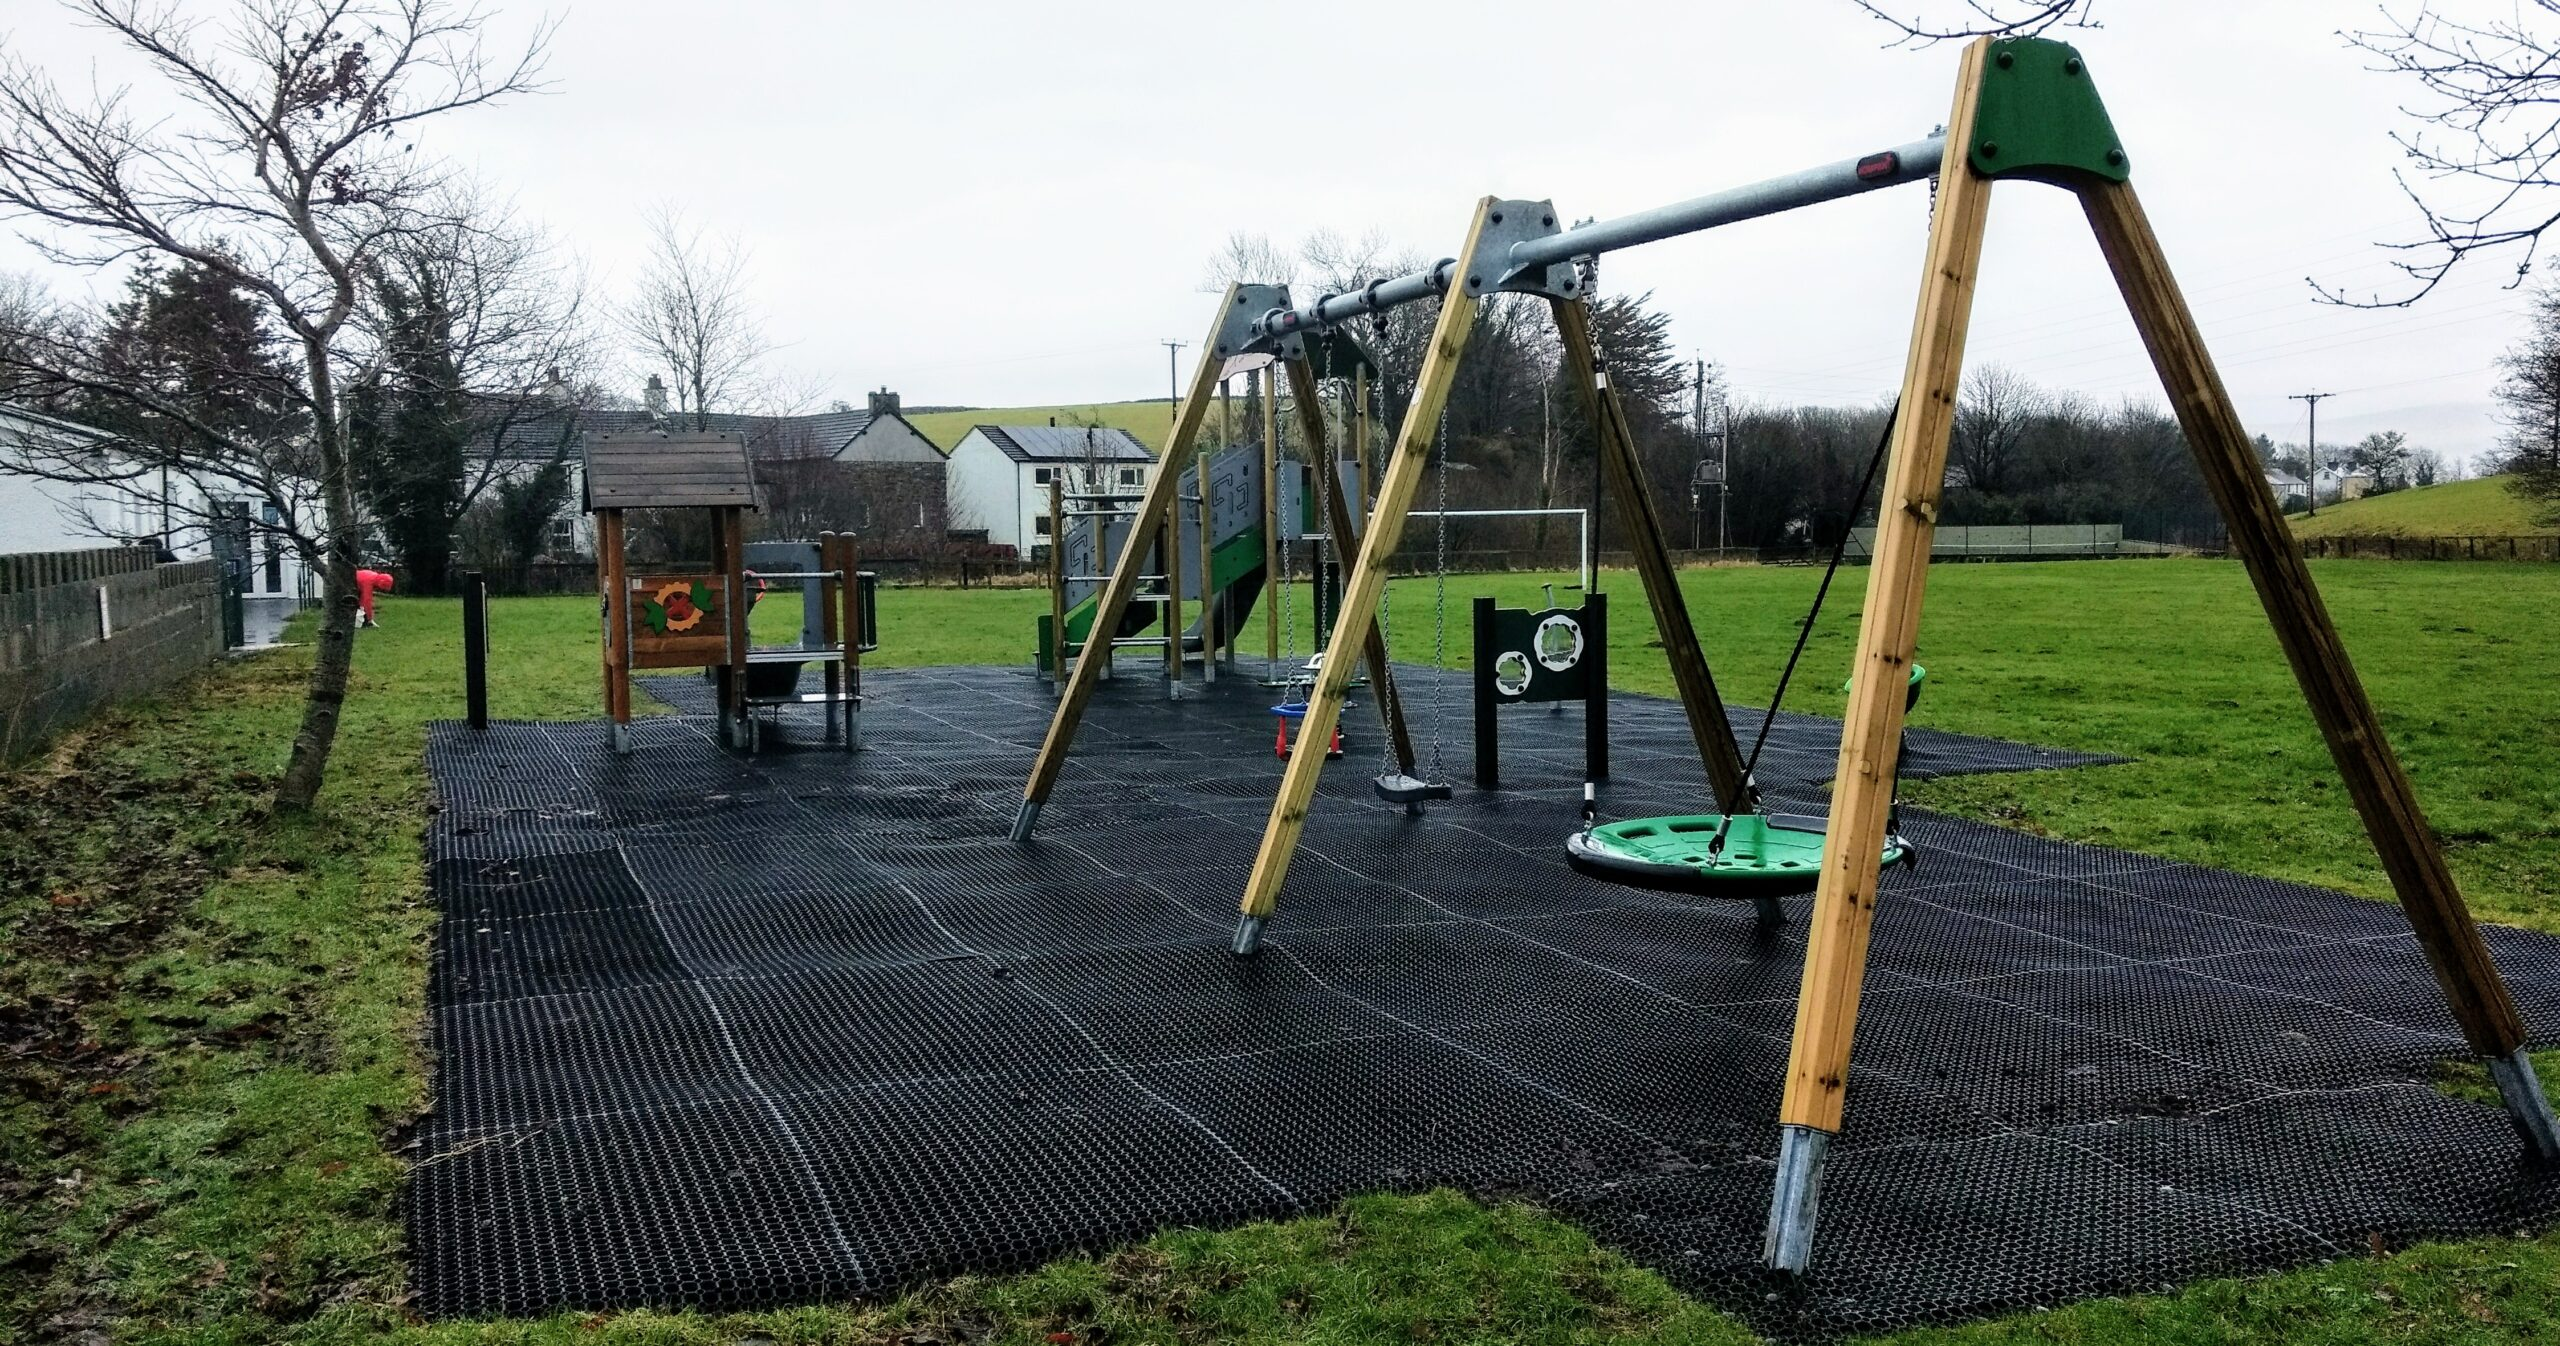 Swings in foreground of view of the play area